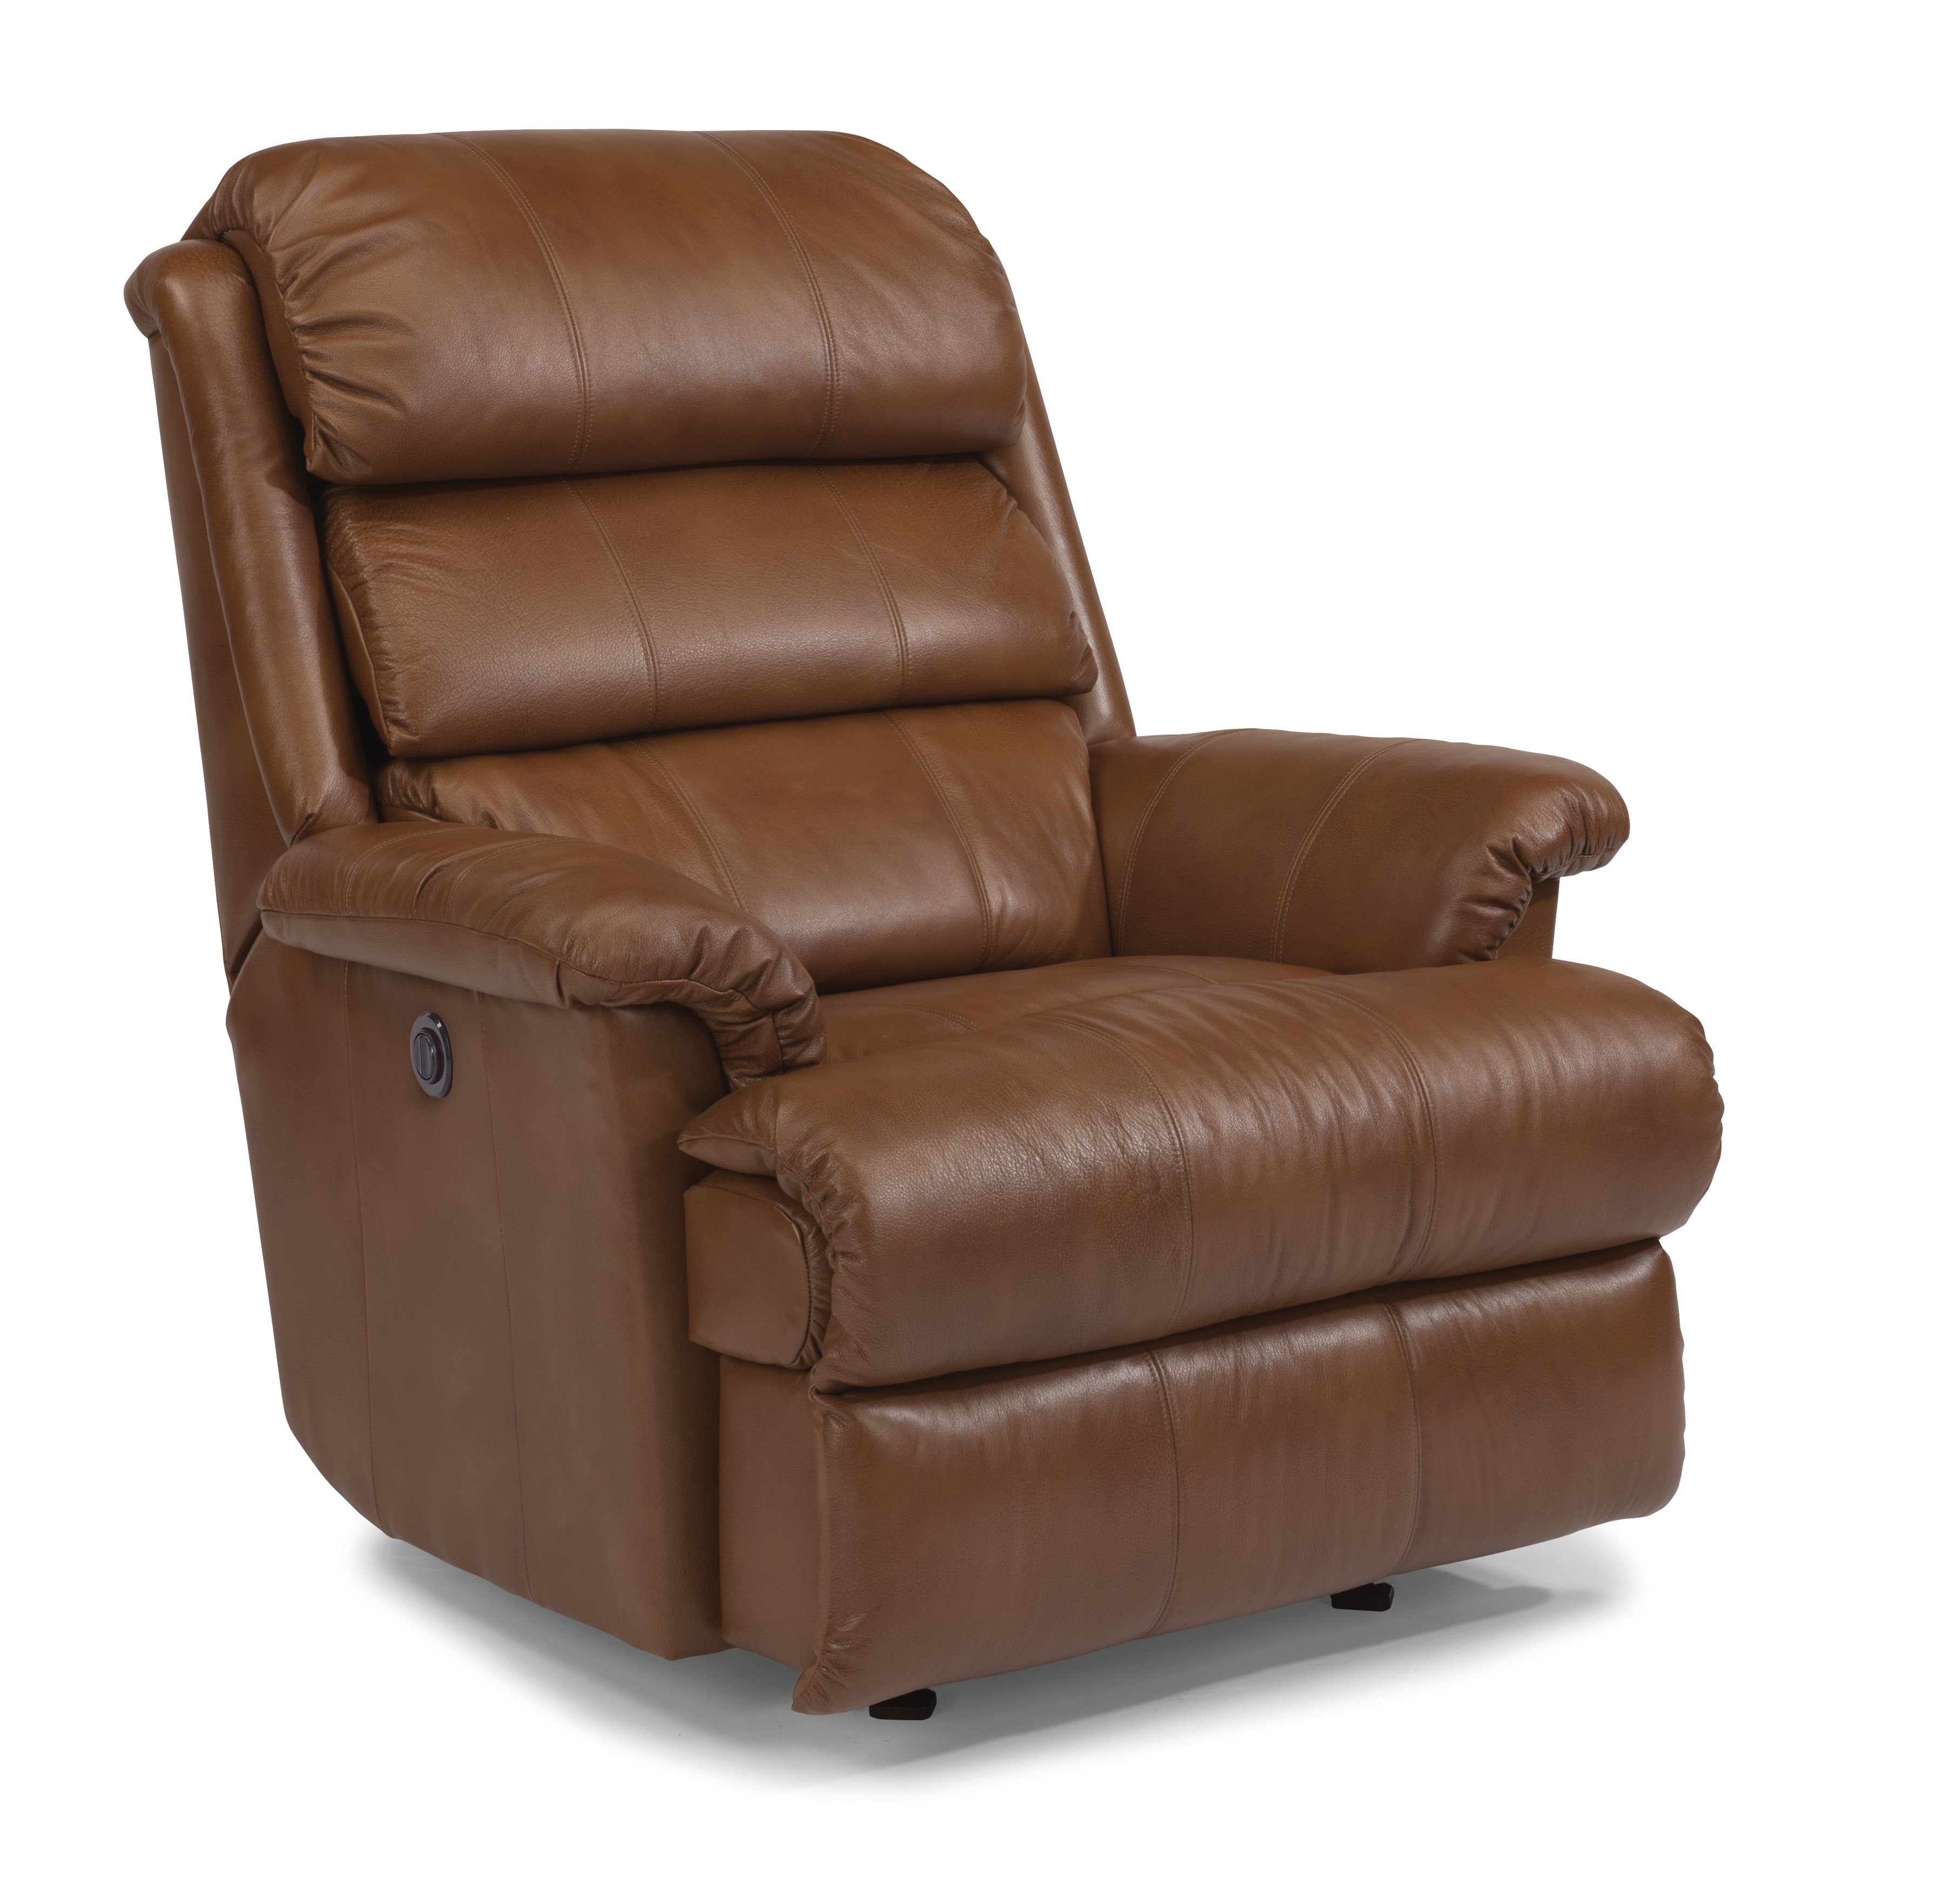 Outstanding Yukon Leather Power Rocking Recliner Adirondack Furniture Alphanode Cool Chair Designs And Ideas Alphanodeonline